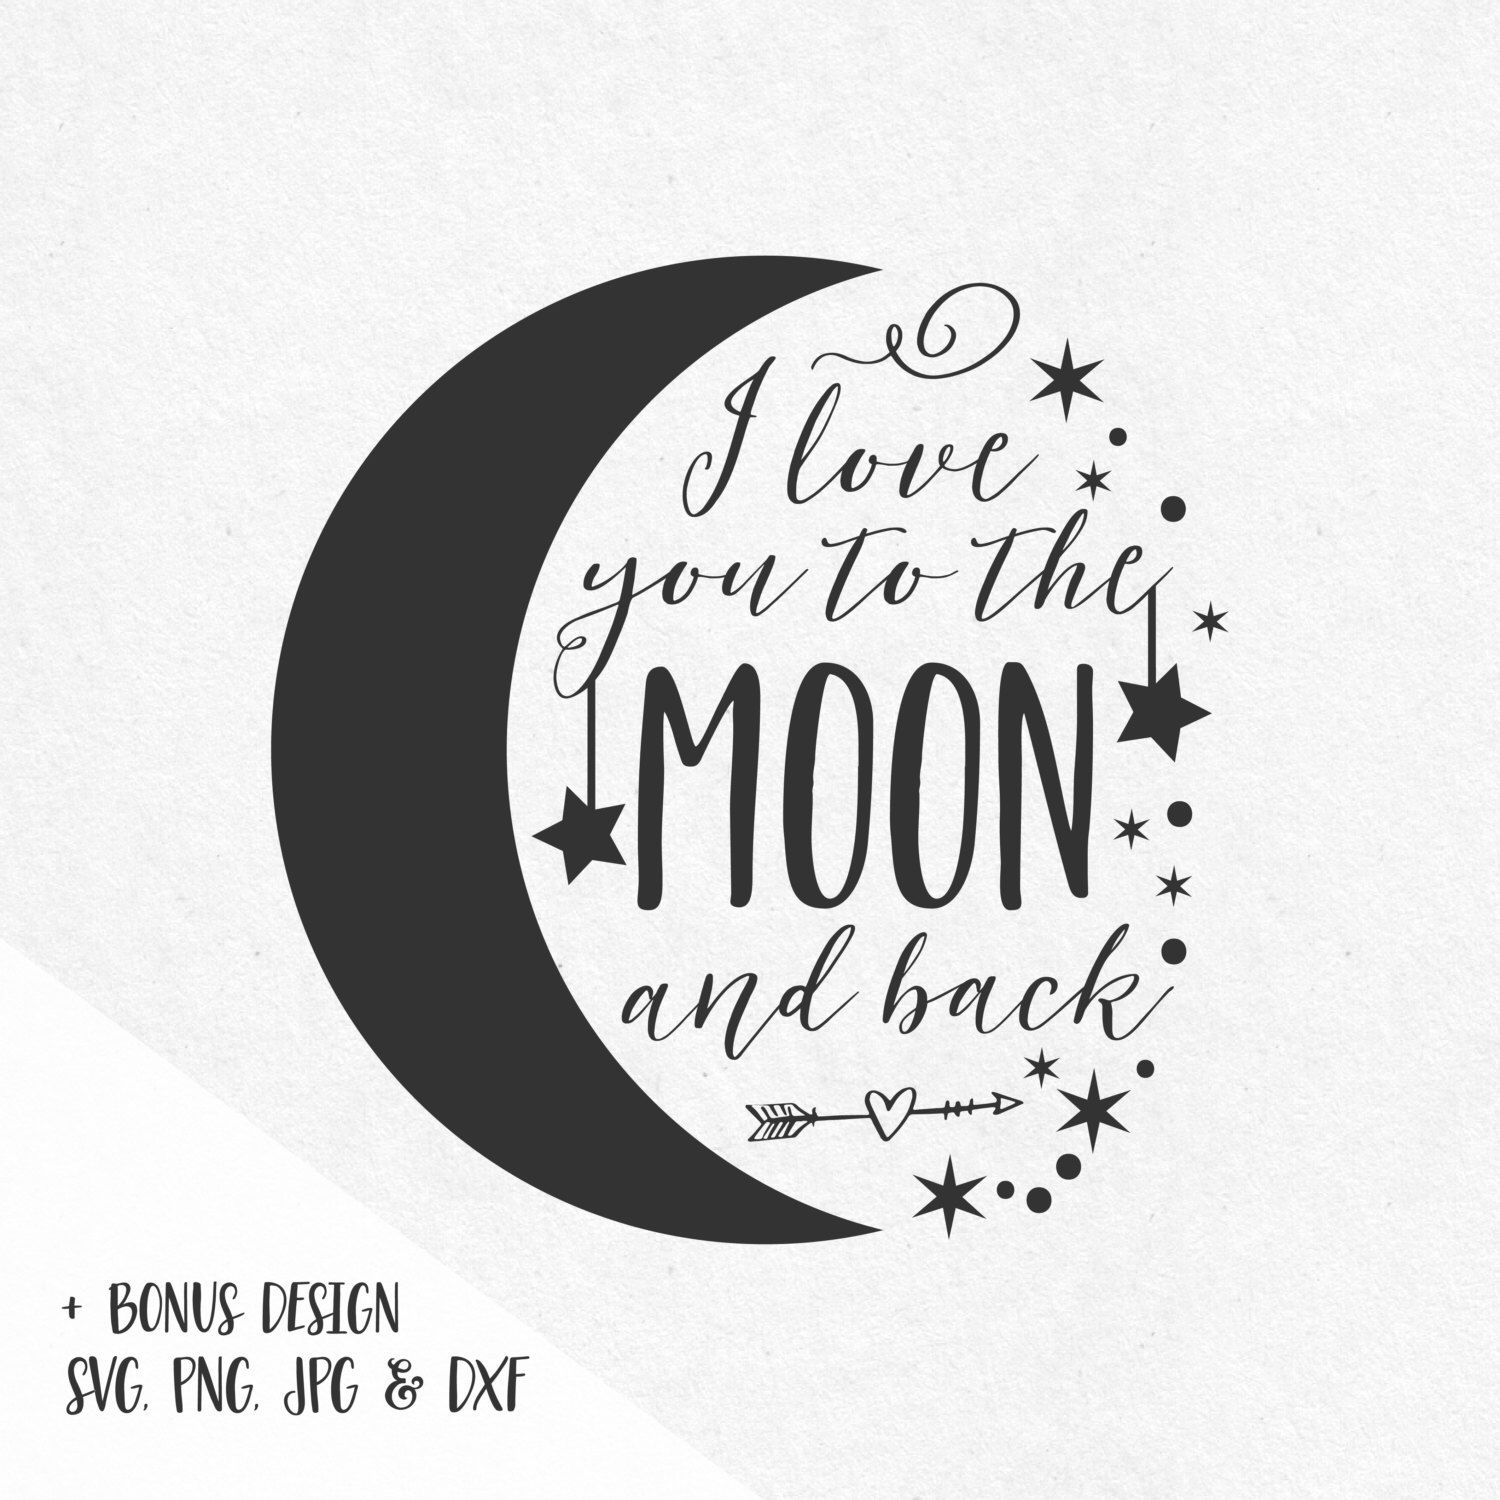 Pin By Heather Cook On Cricut Projects To The Moon Back